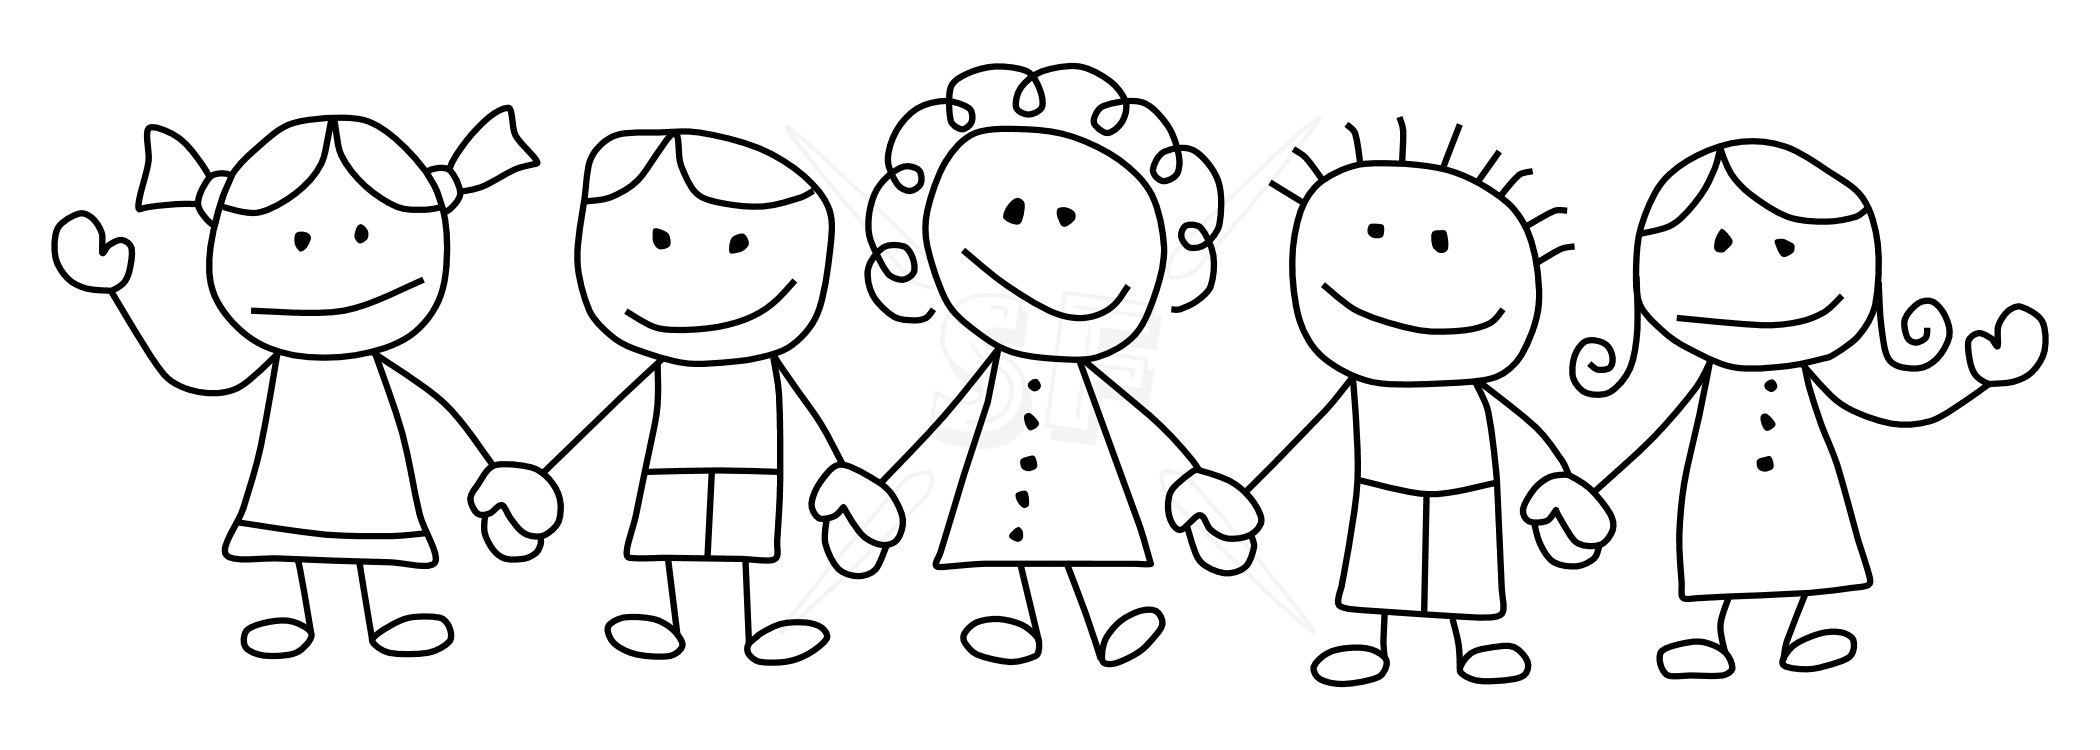 Kids being nice to each other clipart black students library Children Holding Hands Black And White Clipart – Kind Of Letters ... library